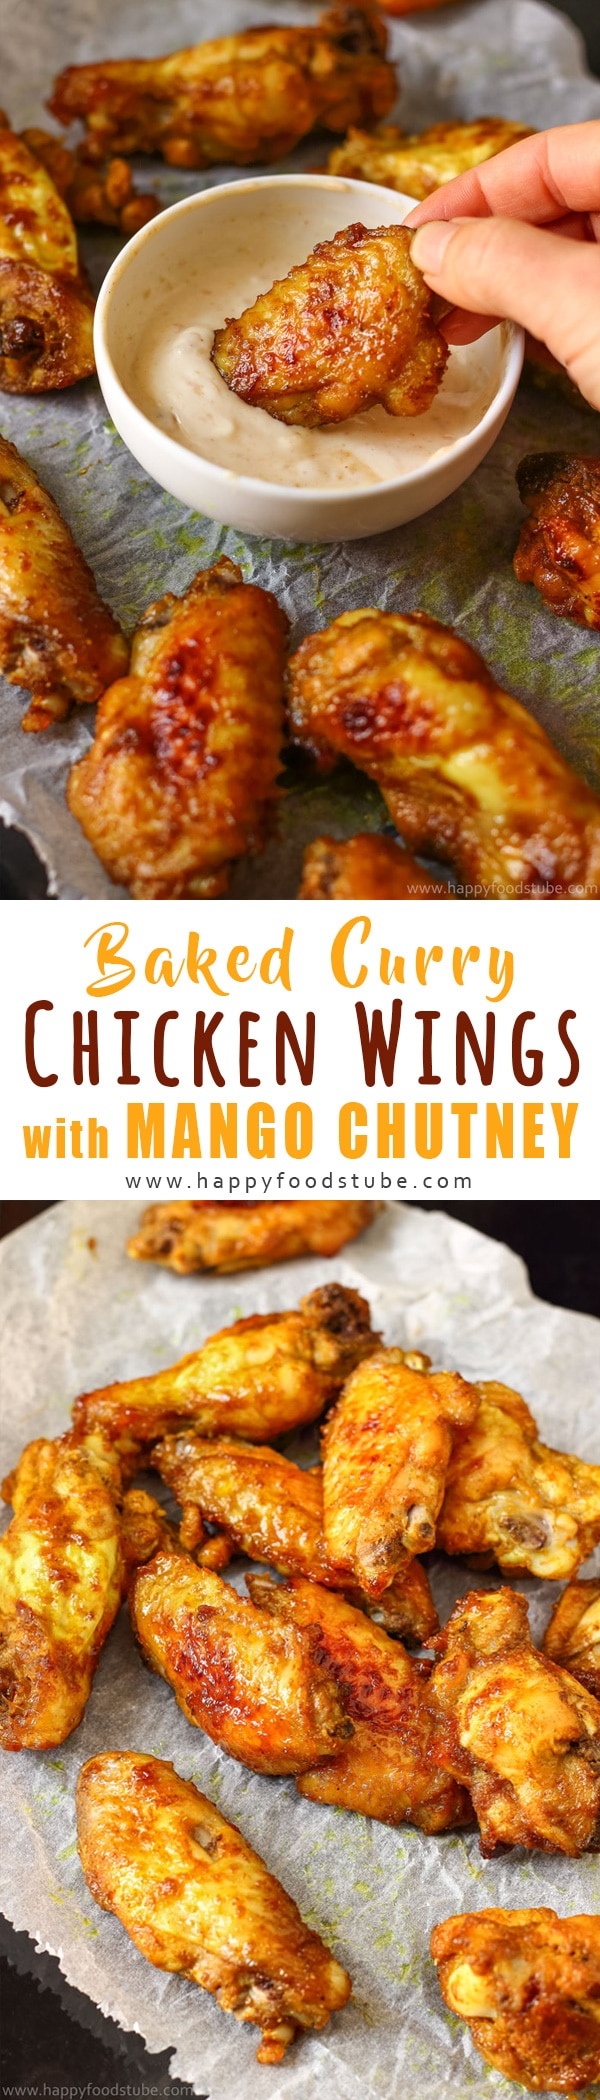 Oven Baked Curry Chicken Wings with Mango Chutney. These tender chicken wings are marinated in mango chutney marinade and baked to perfection. How to make baked chicken wings